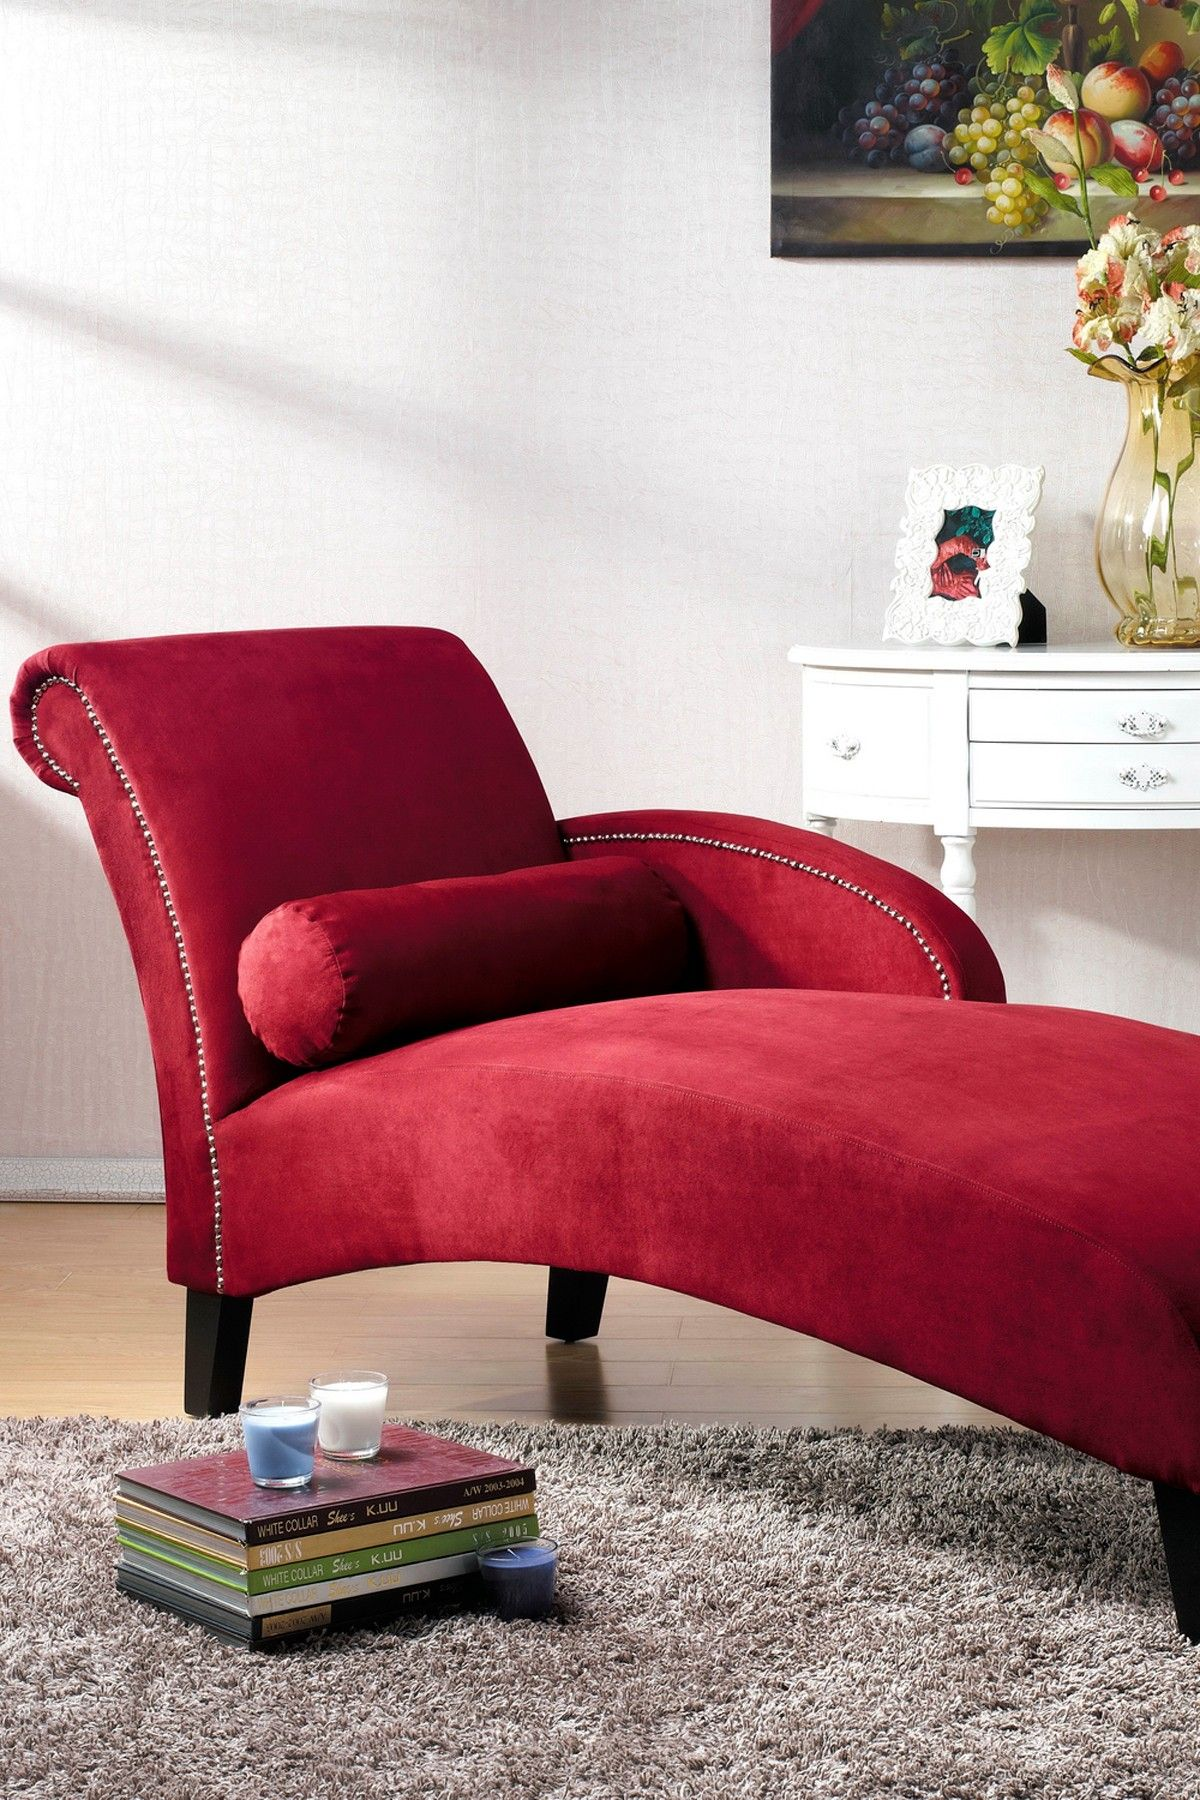 Hestia Red Microfiber Modern Chaise Lounge On Hautelook Want  # Casa Hestia Muebles